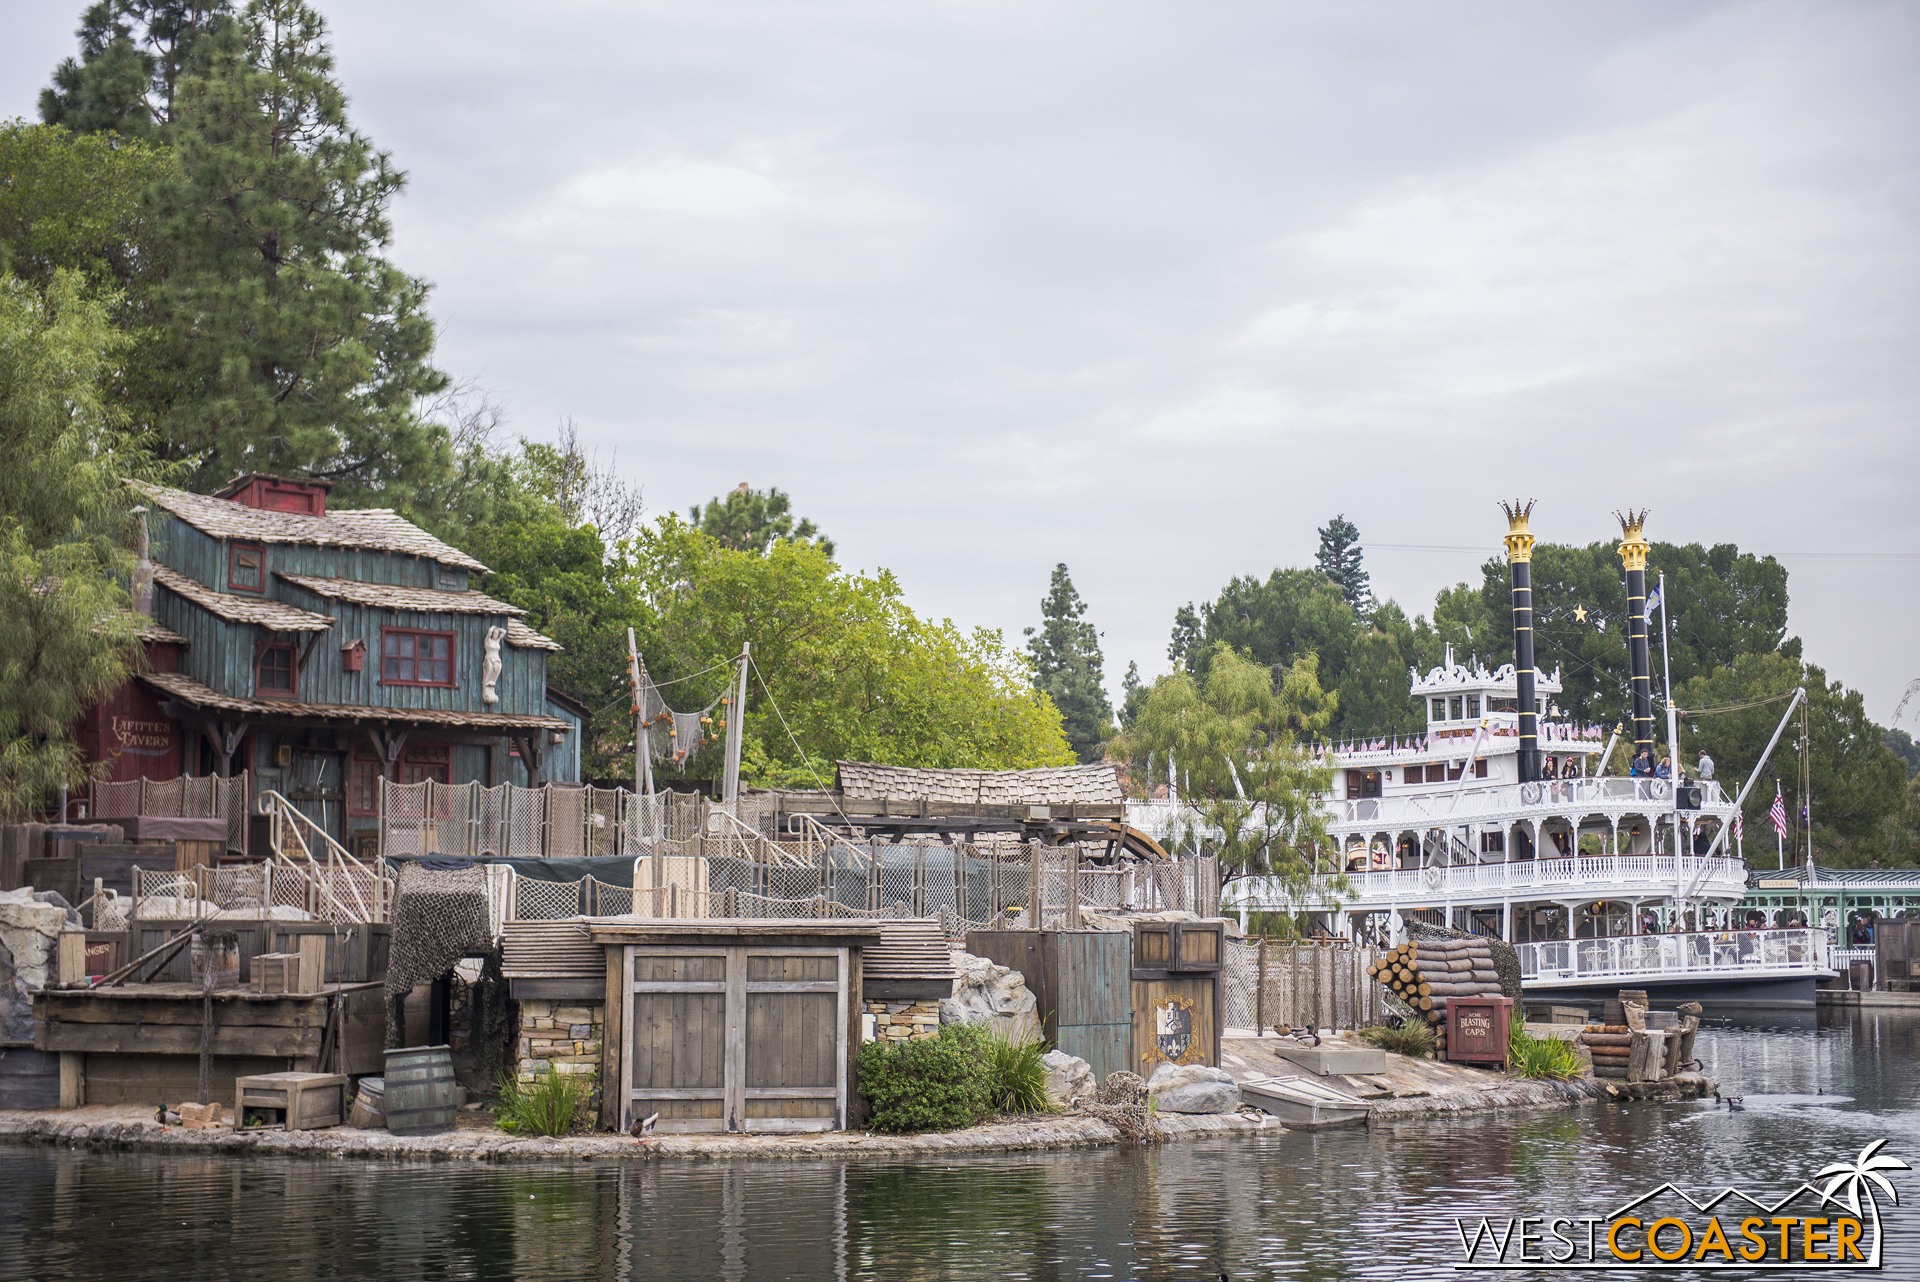 A view back to the Mark Twain, which remains docked.